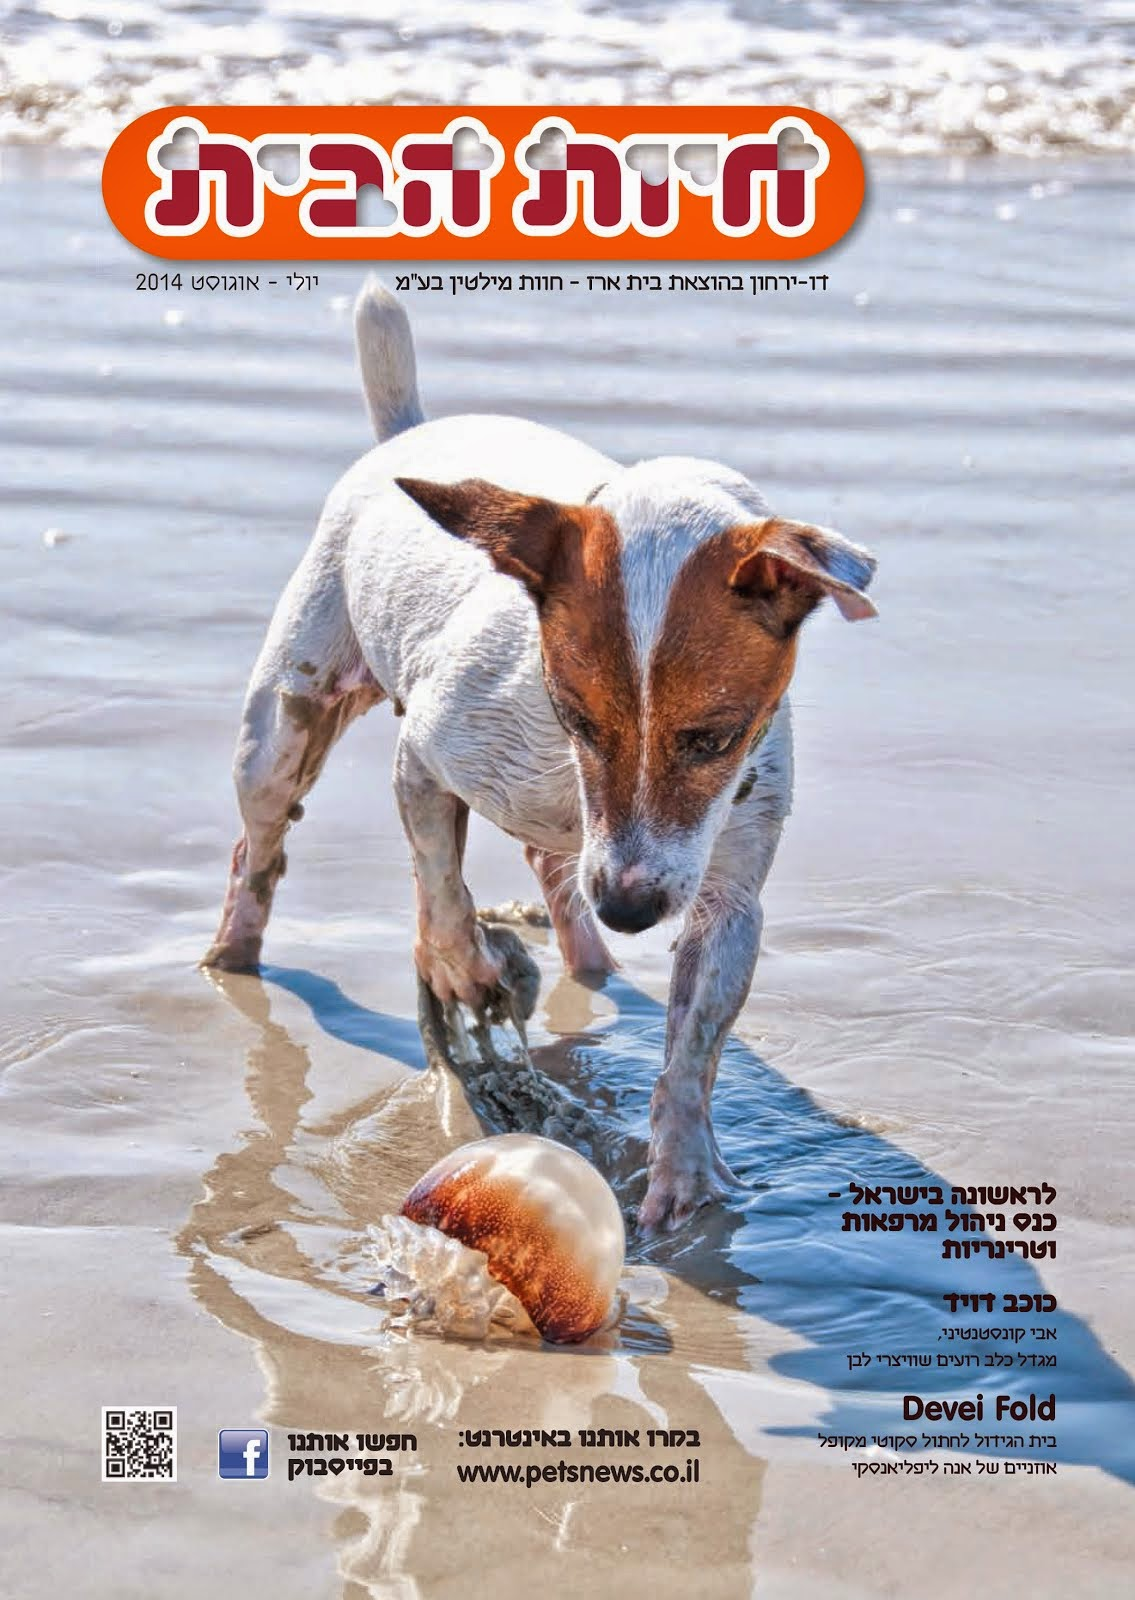 PetsNews, July/August and September/October (2014)